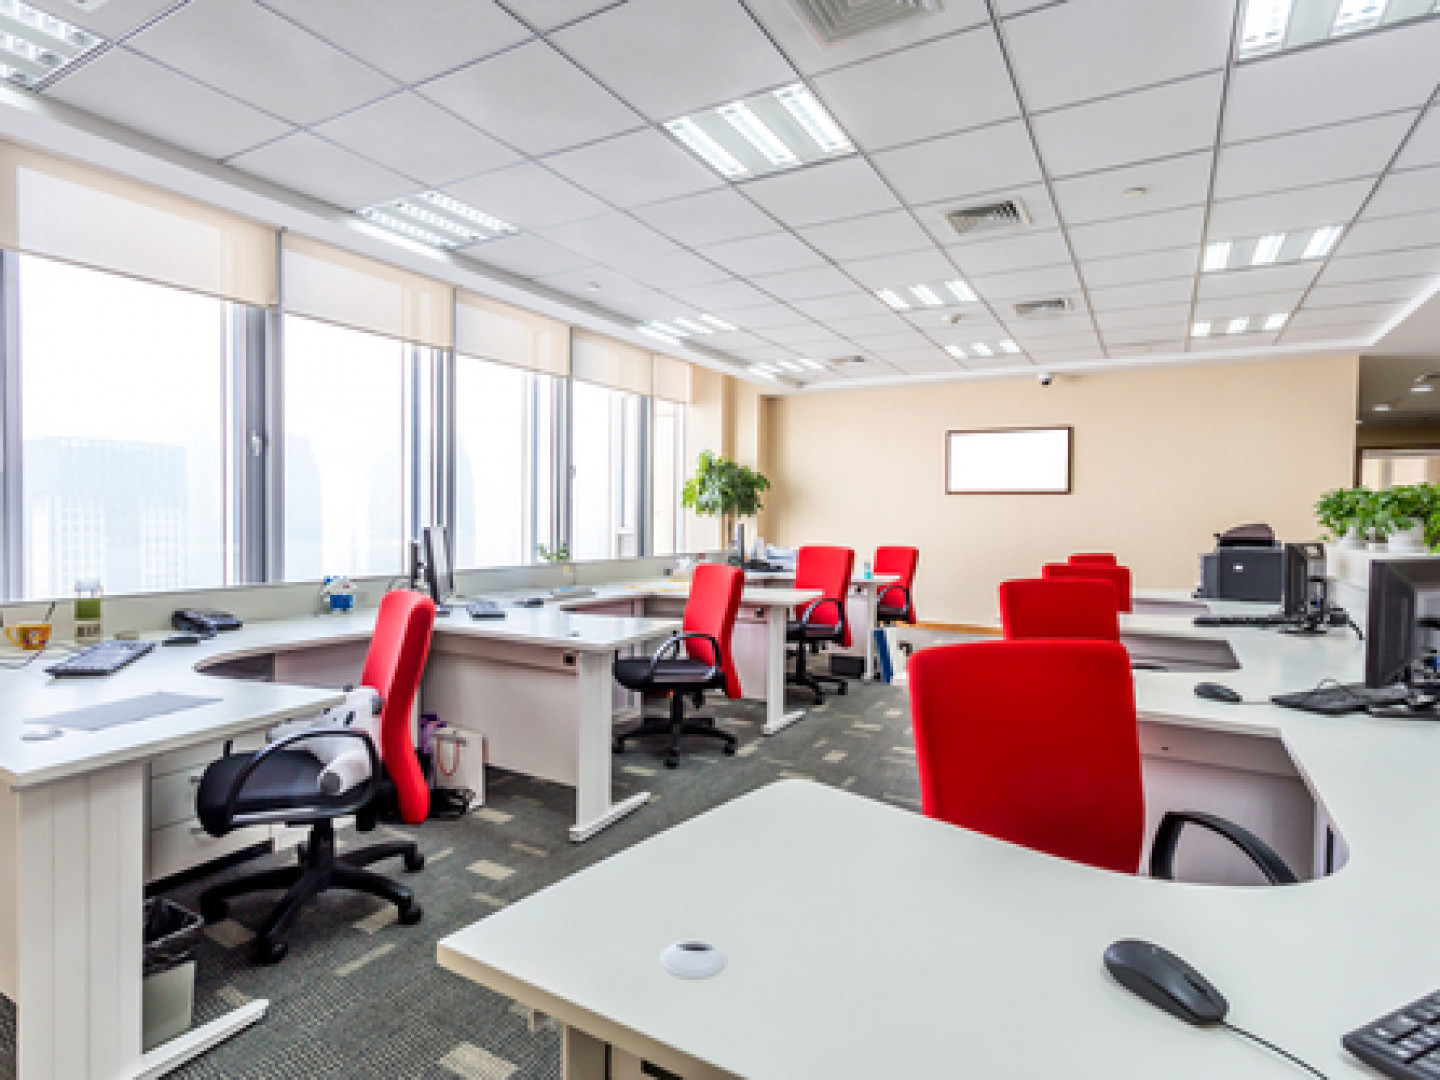 Our highly reliable, customer-focused team will customize our office cleaning services to fit your needs